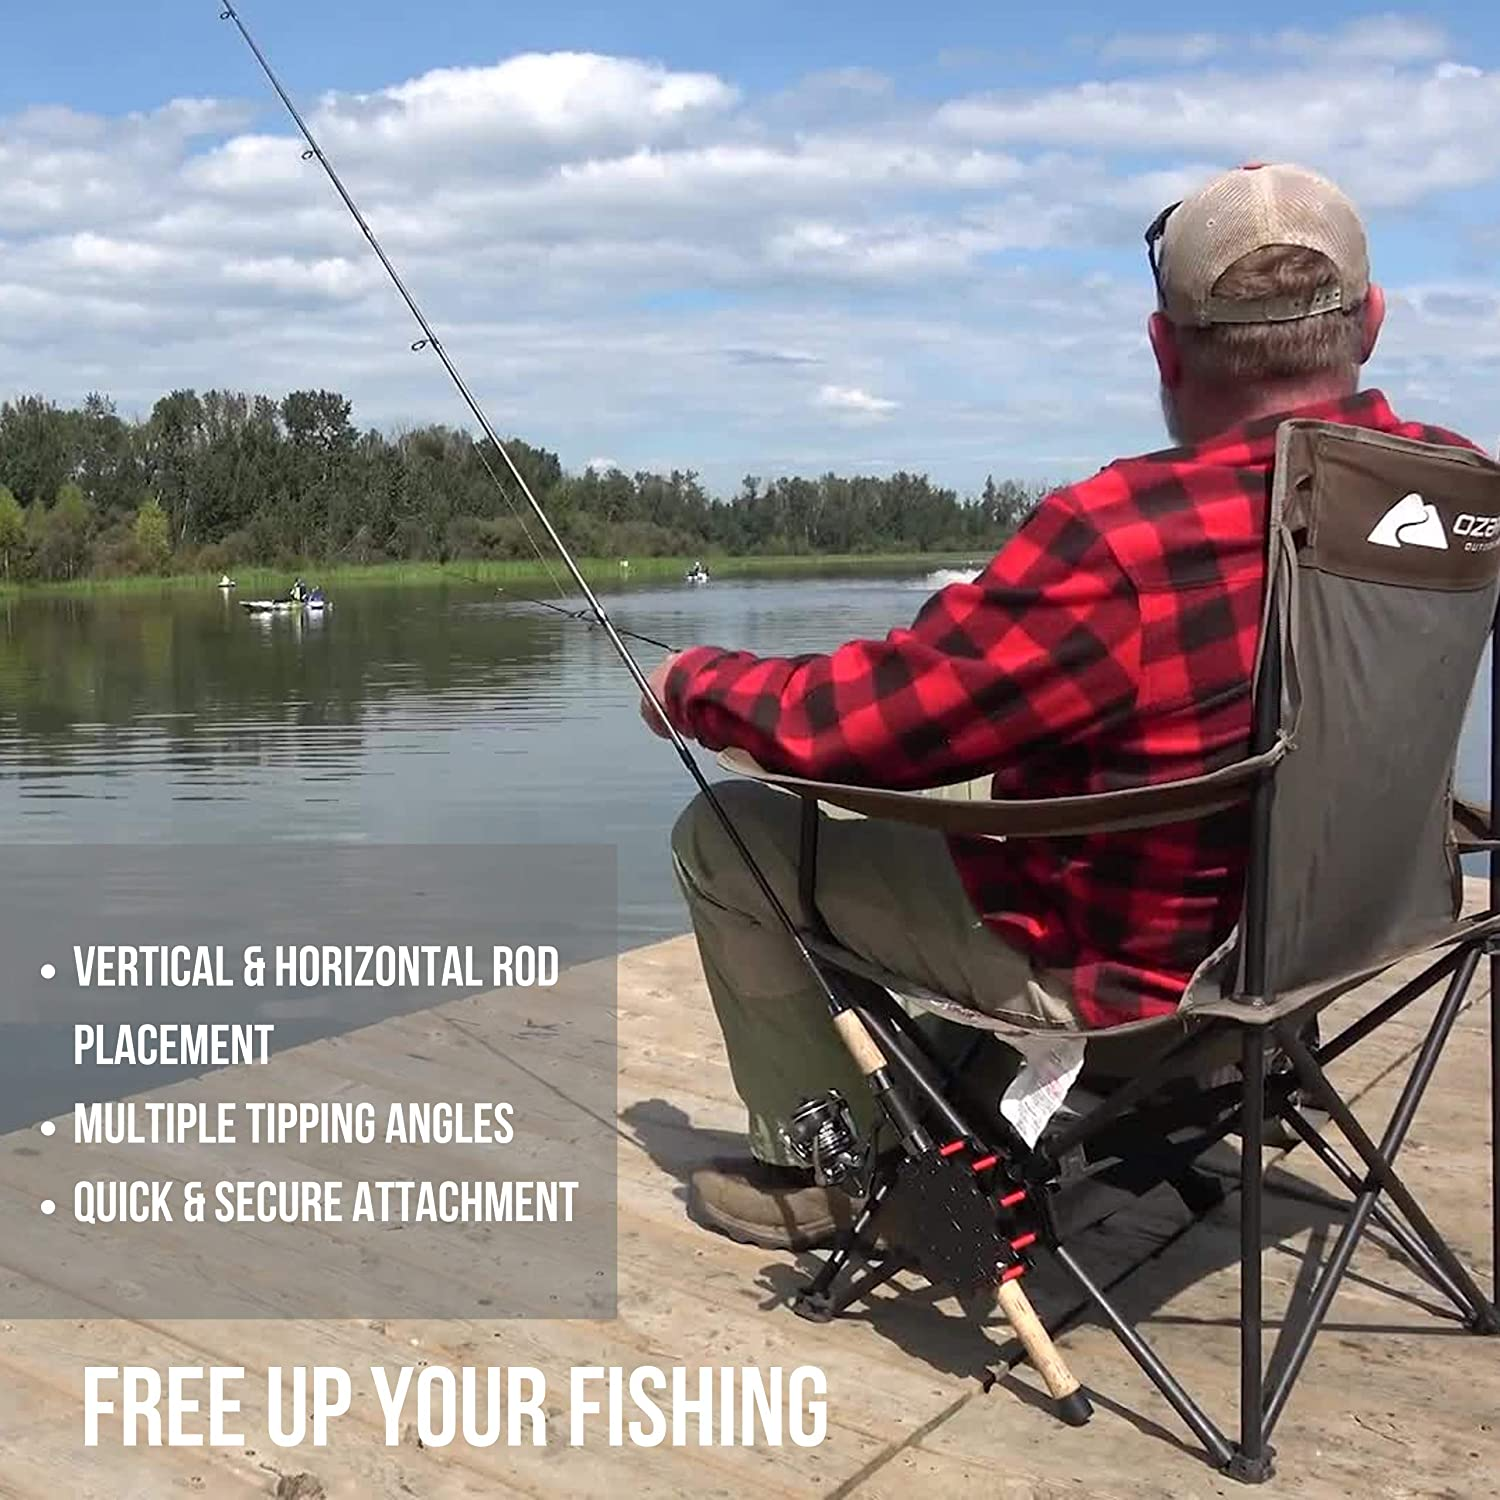 Universal Fishing Pole Holder for Anglers No Ground Required The Only All Terrain Fishing Rod Holder for Bank Fishing Portable Hands-Free Shore Fishing Rod Sprocket Fishing Rod Holder